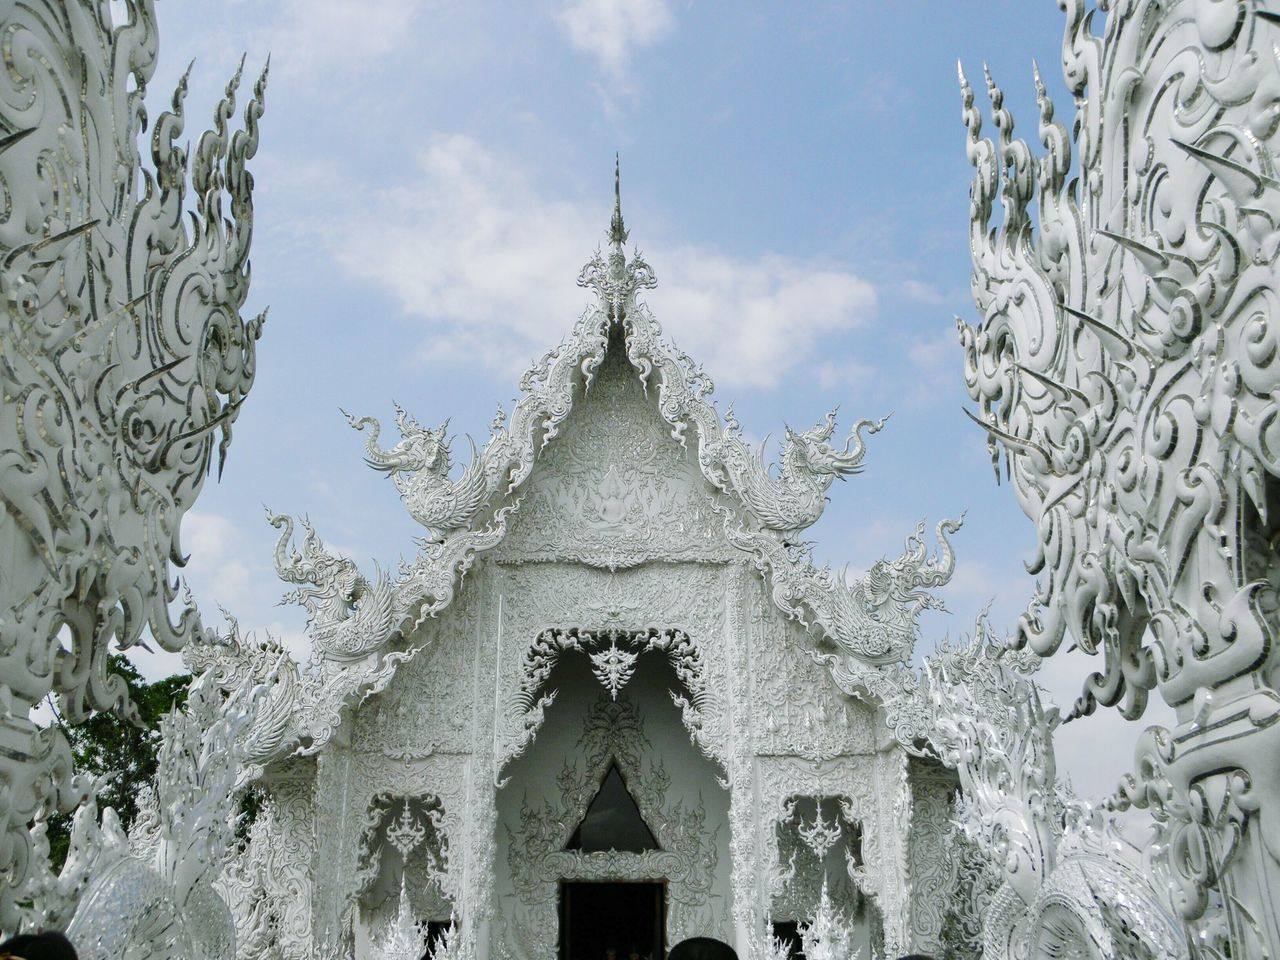 Rong Khun or White Church Temple. Way to heaven. Chiang Rai. TH. Architecture Ornate BUDDHISM IS LOVE Travelling Thailand Travel Destinations Place Of Worship Arts Culture And Entertainment Illuminated Luxury Buddhism Culture Buddhist Temple Outdoors Building Exterior Spirituality Religion Beauty Tradition Landscape Thailand Temple No People Full Frame Sculpture White Church Architecture Focus On Foreground